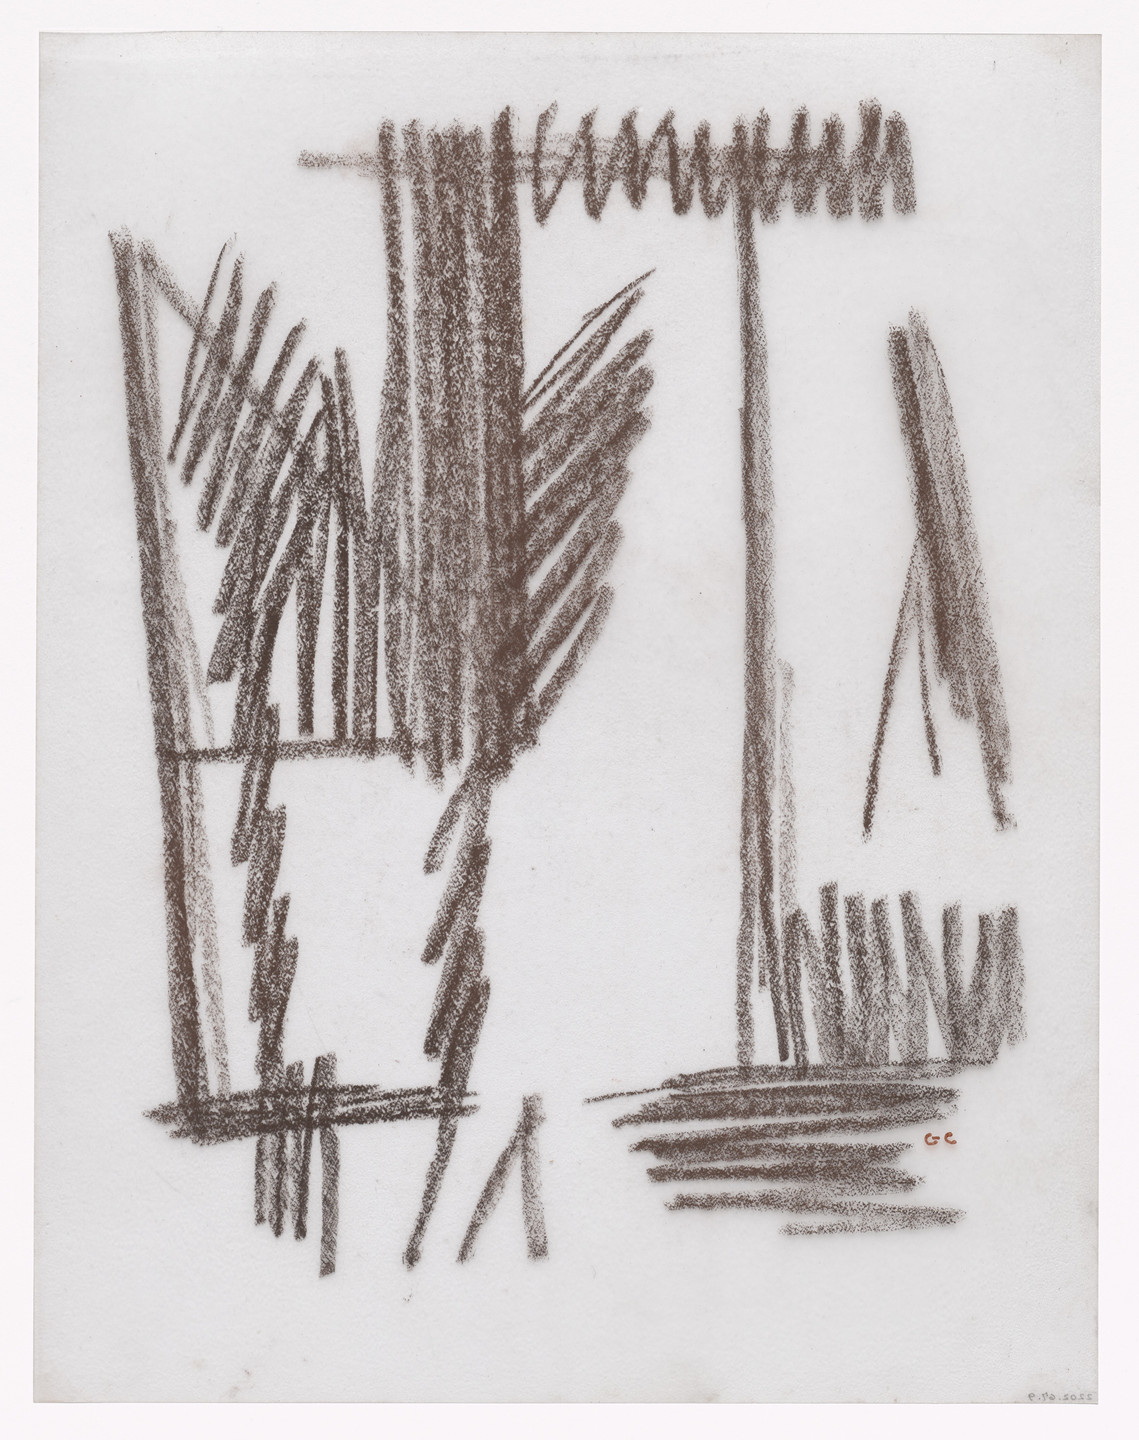 Giorgio Cavallon. Unused preparatory drawing for In Memory of My Feelings. 1967